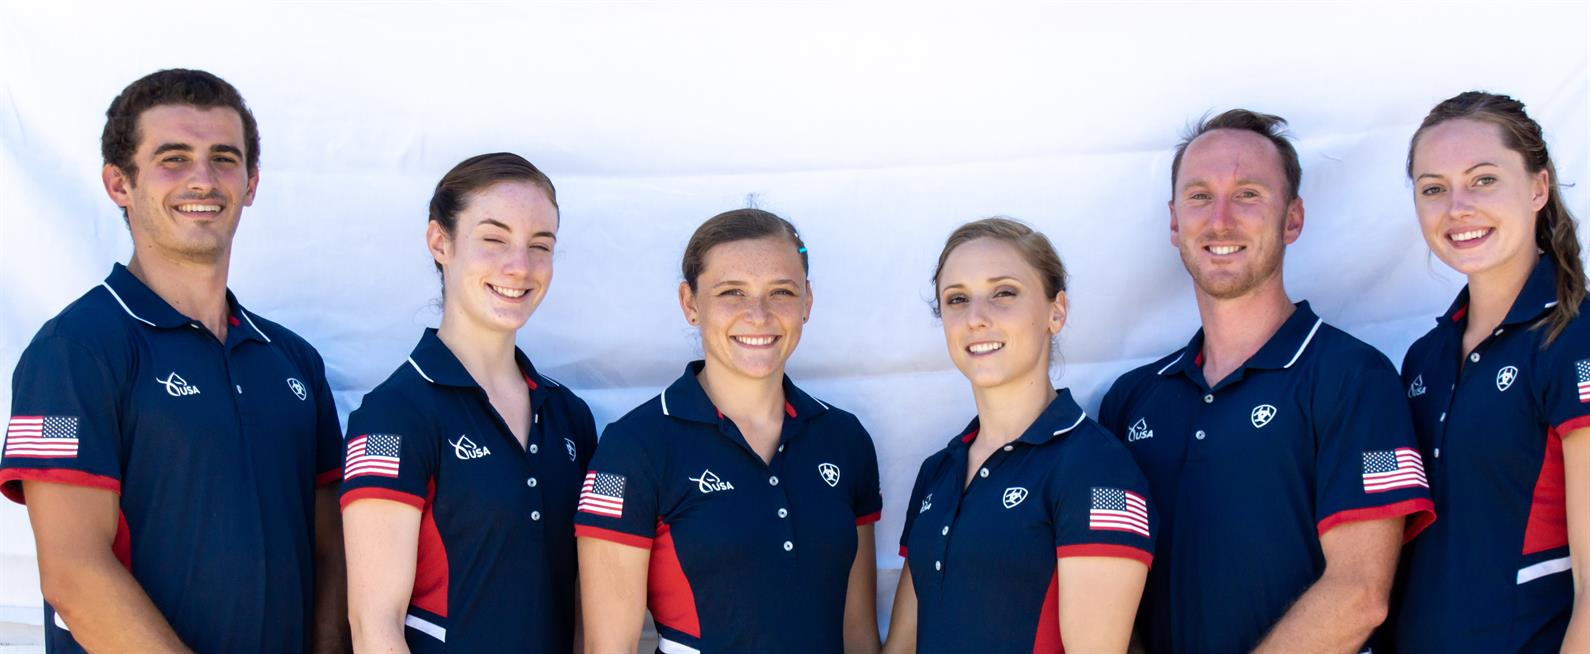 U S Vaulting Team Ready For Competition At Fei World